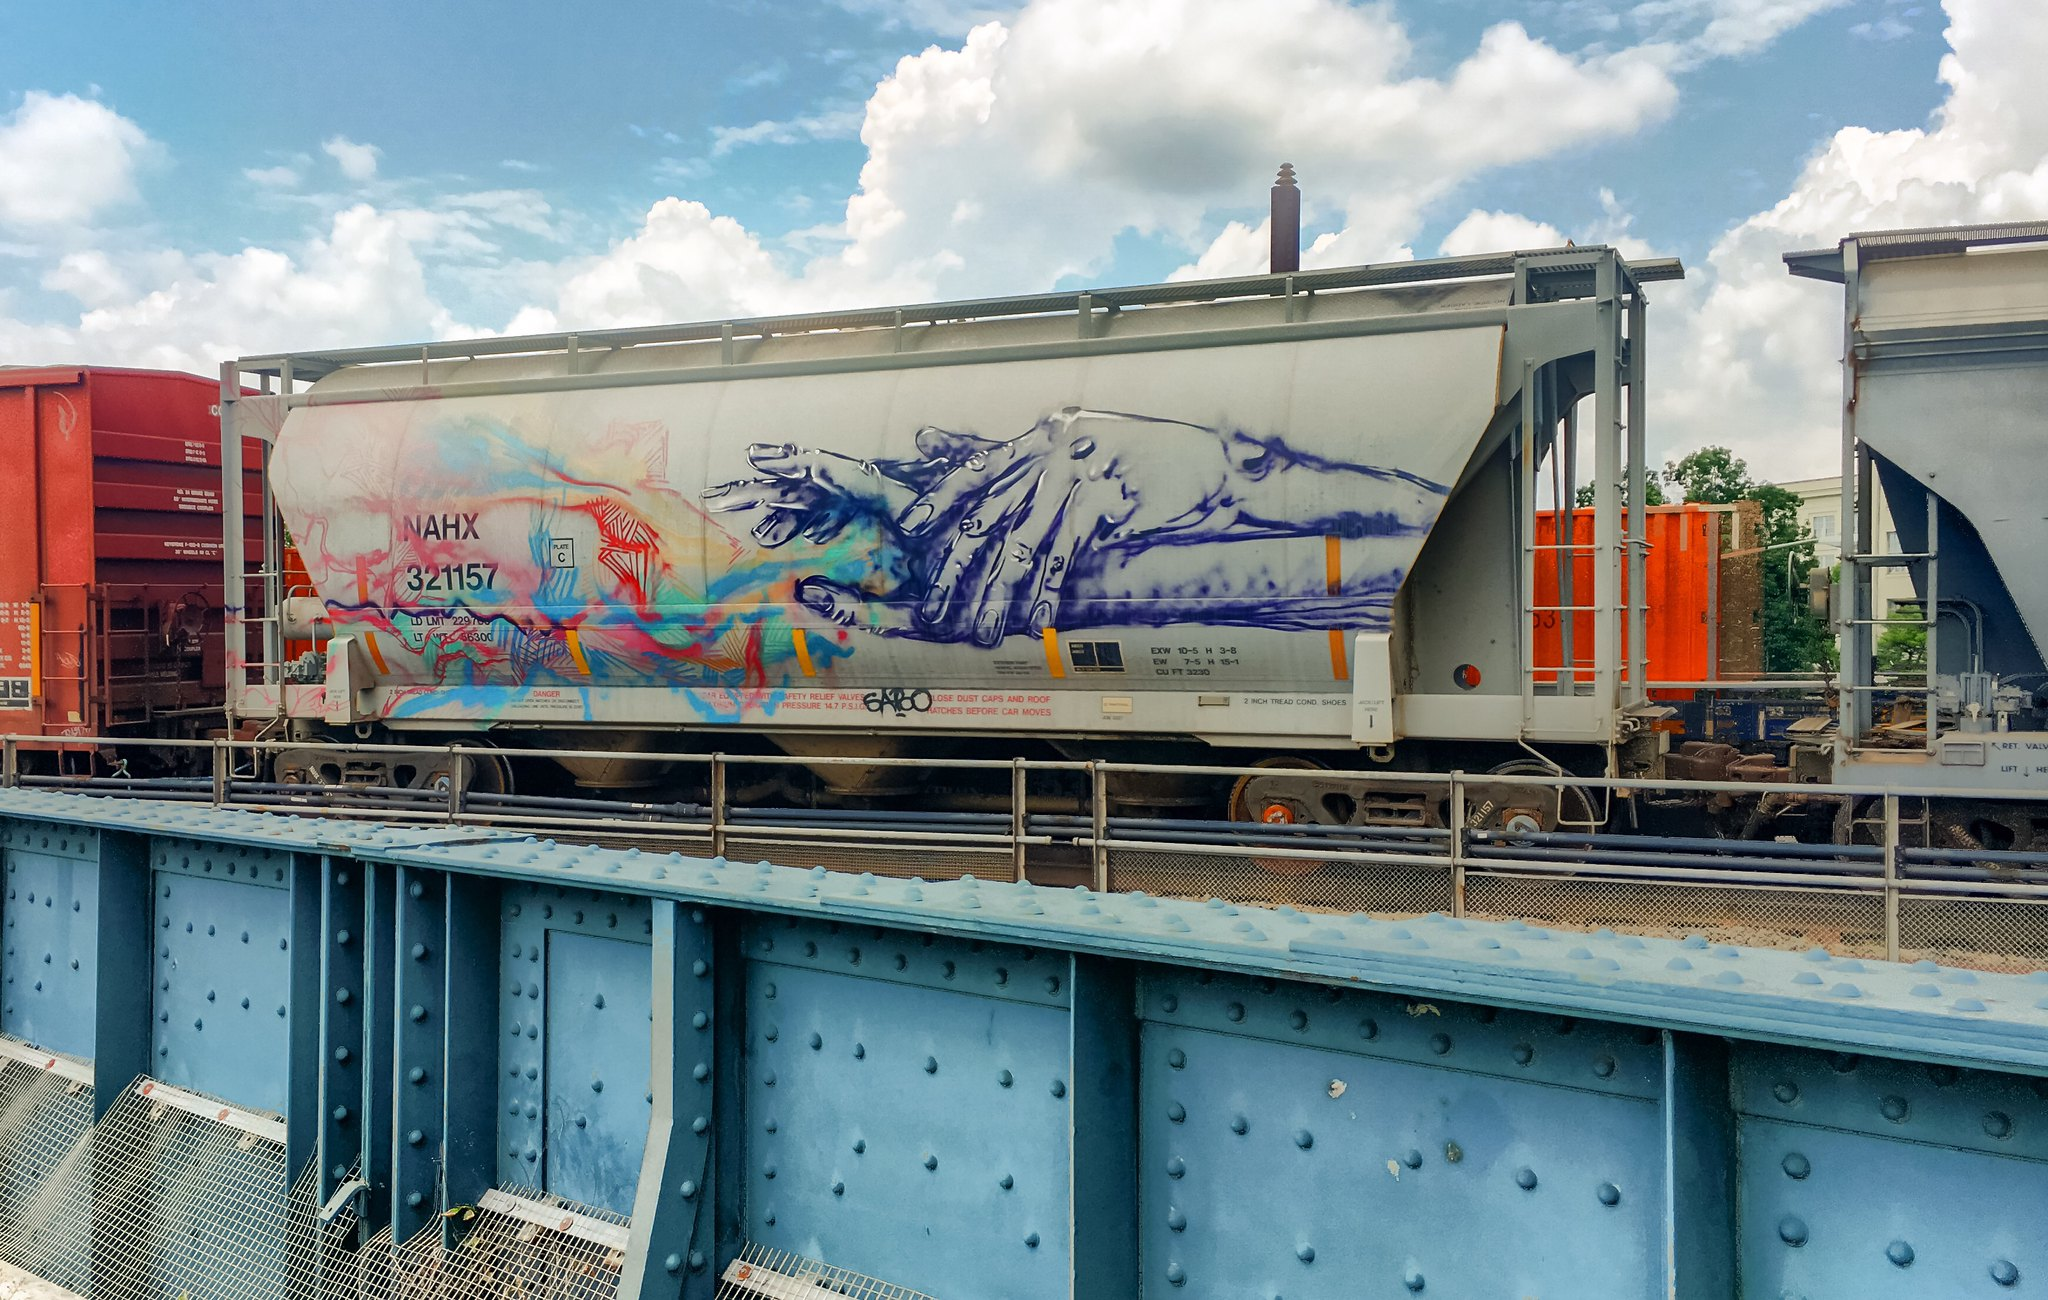 Train Graffiti